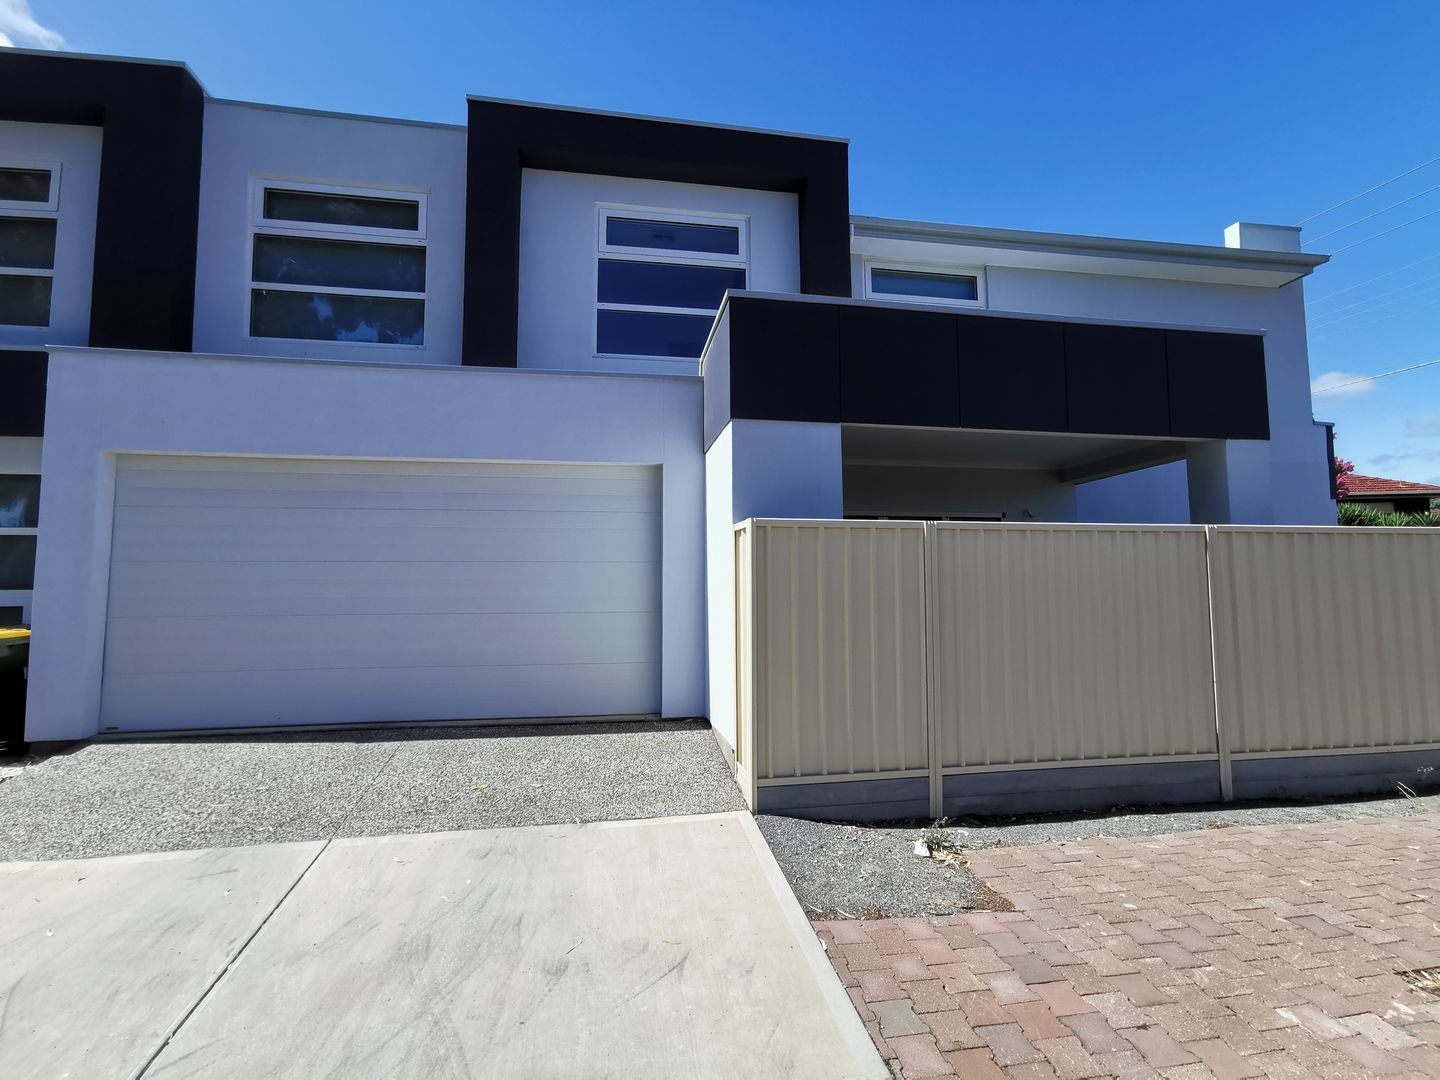 11A Piccadilly Crescent, Campbelltown SA 5074, Image 0